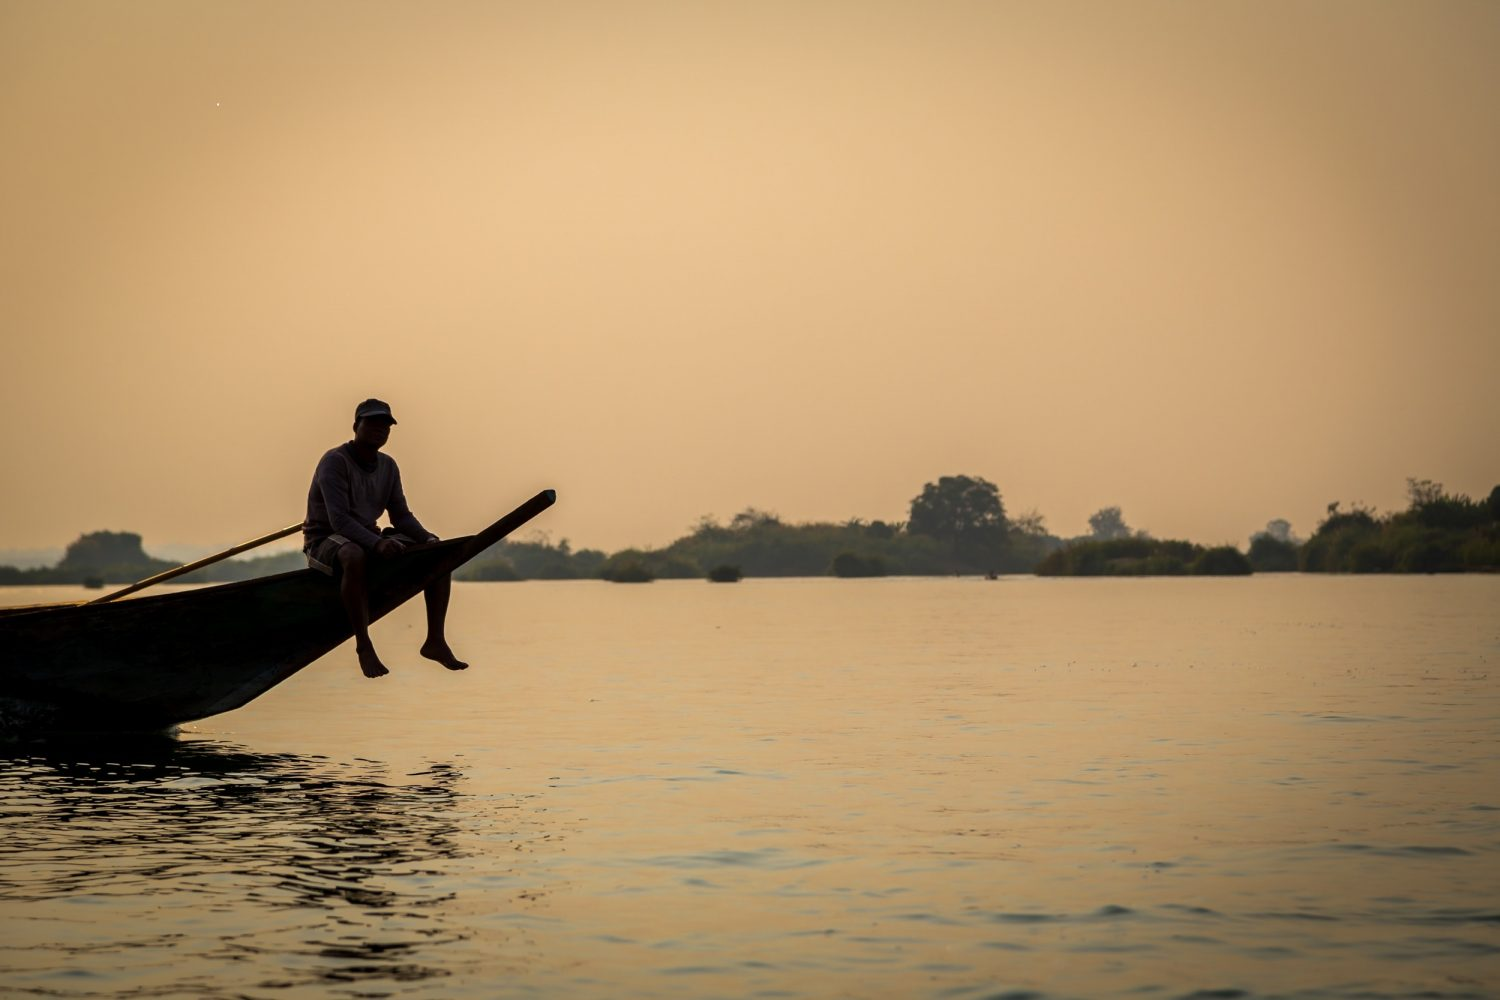 the Mekong River - Tour Vietnam and Cambodia